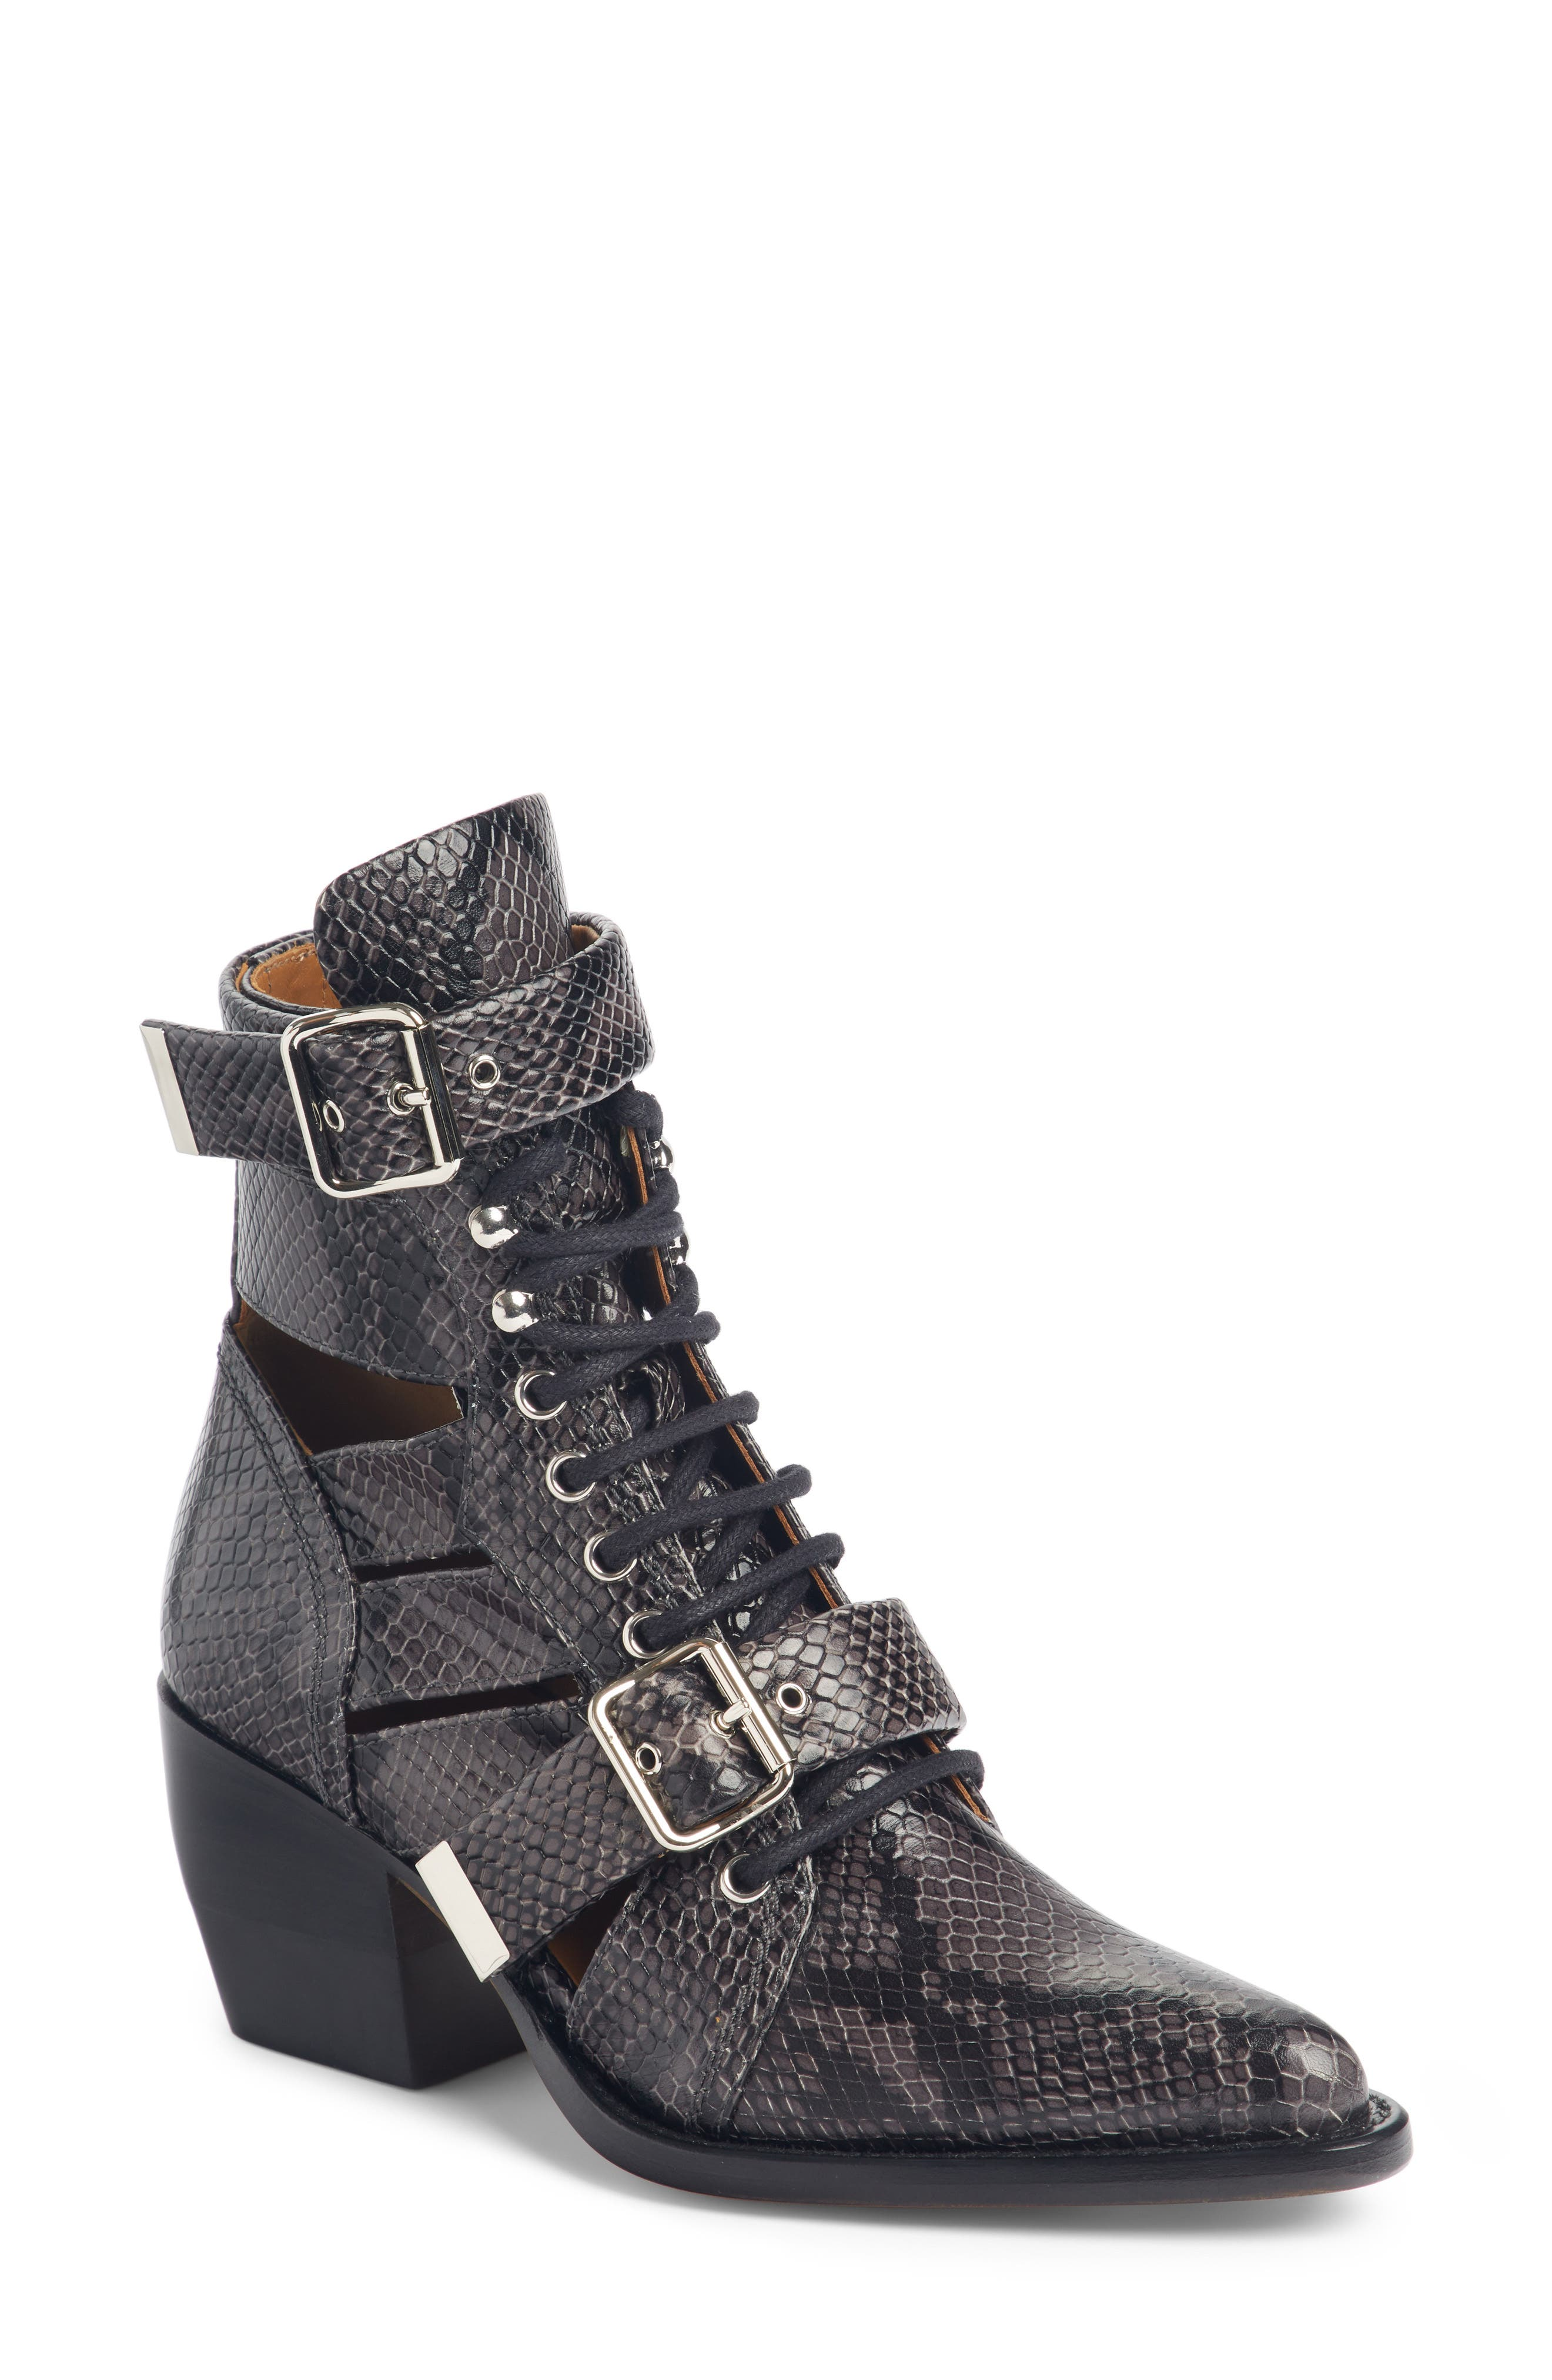 CHLOÉ, Rylee Caged Pointy Toe Boot, Main thumbnail 1, color, CHARCOAL BLACK